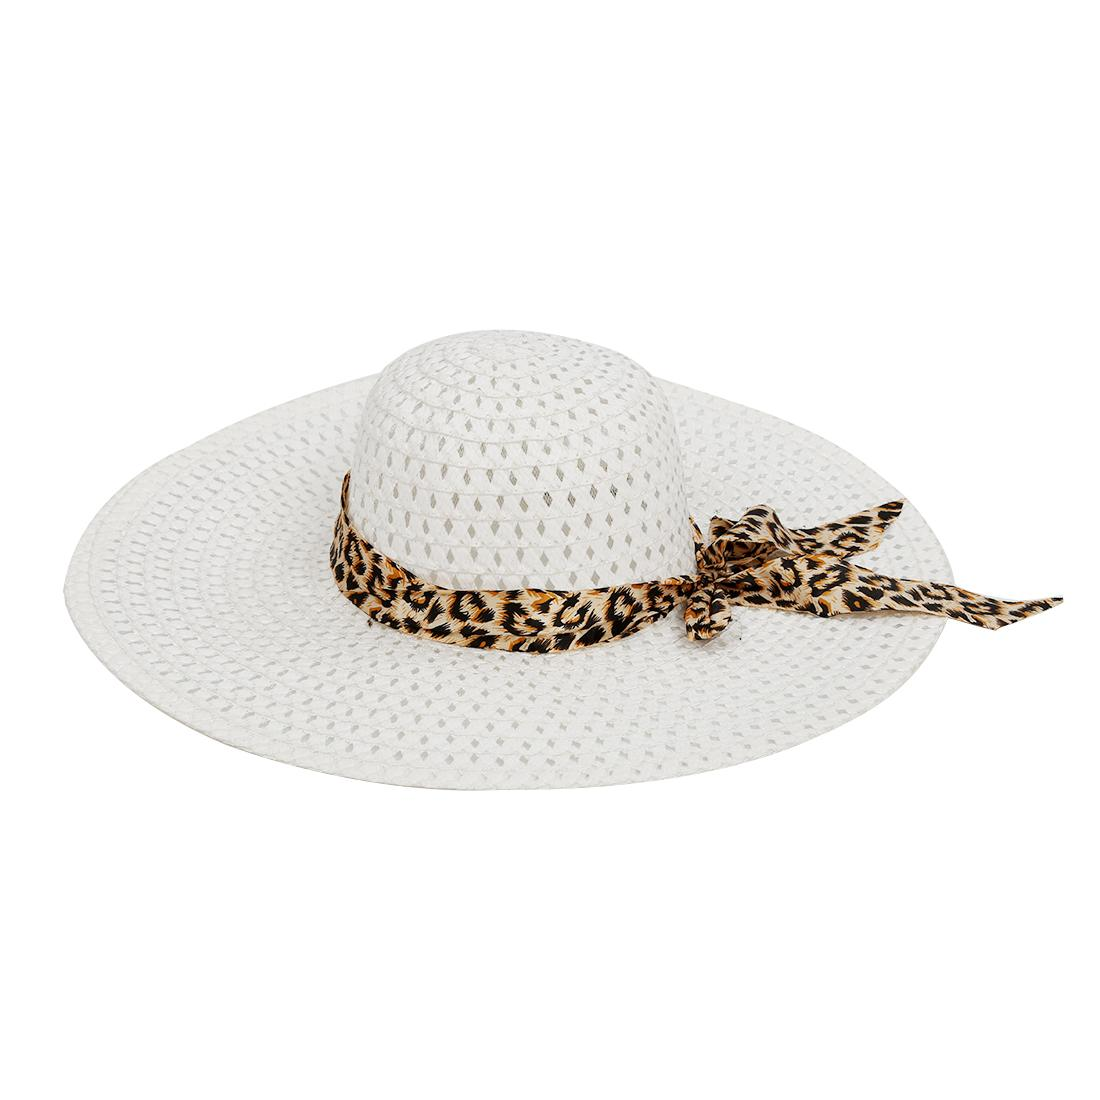 73595c39 Wholesale SAF White Summer Exquisite Leopard Ribbon Bowknot Decorated  Openwork Sun Hat For Women Scrub Hats Mens Hat From Heheda1, $24.48|  DHgate.Com